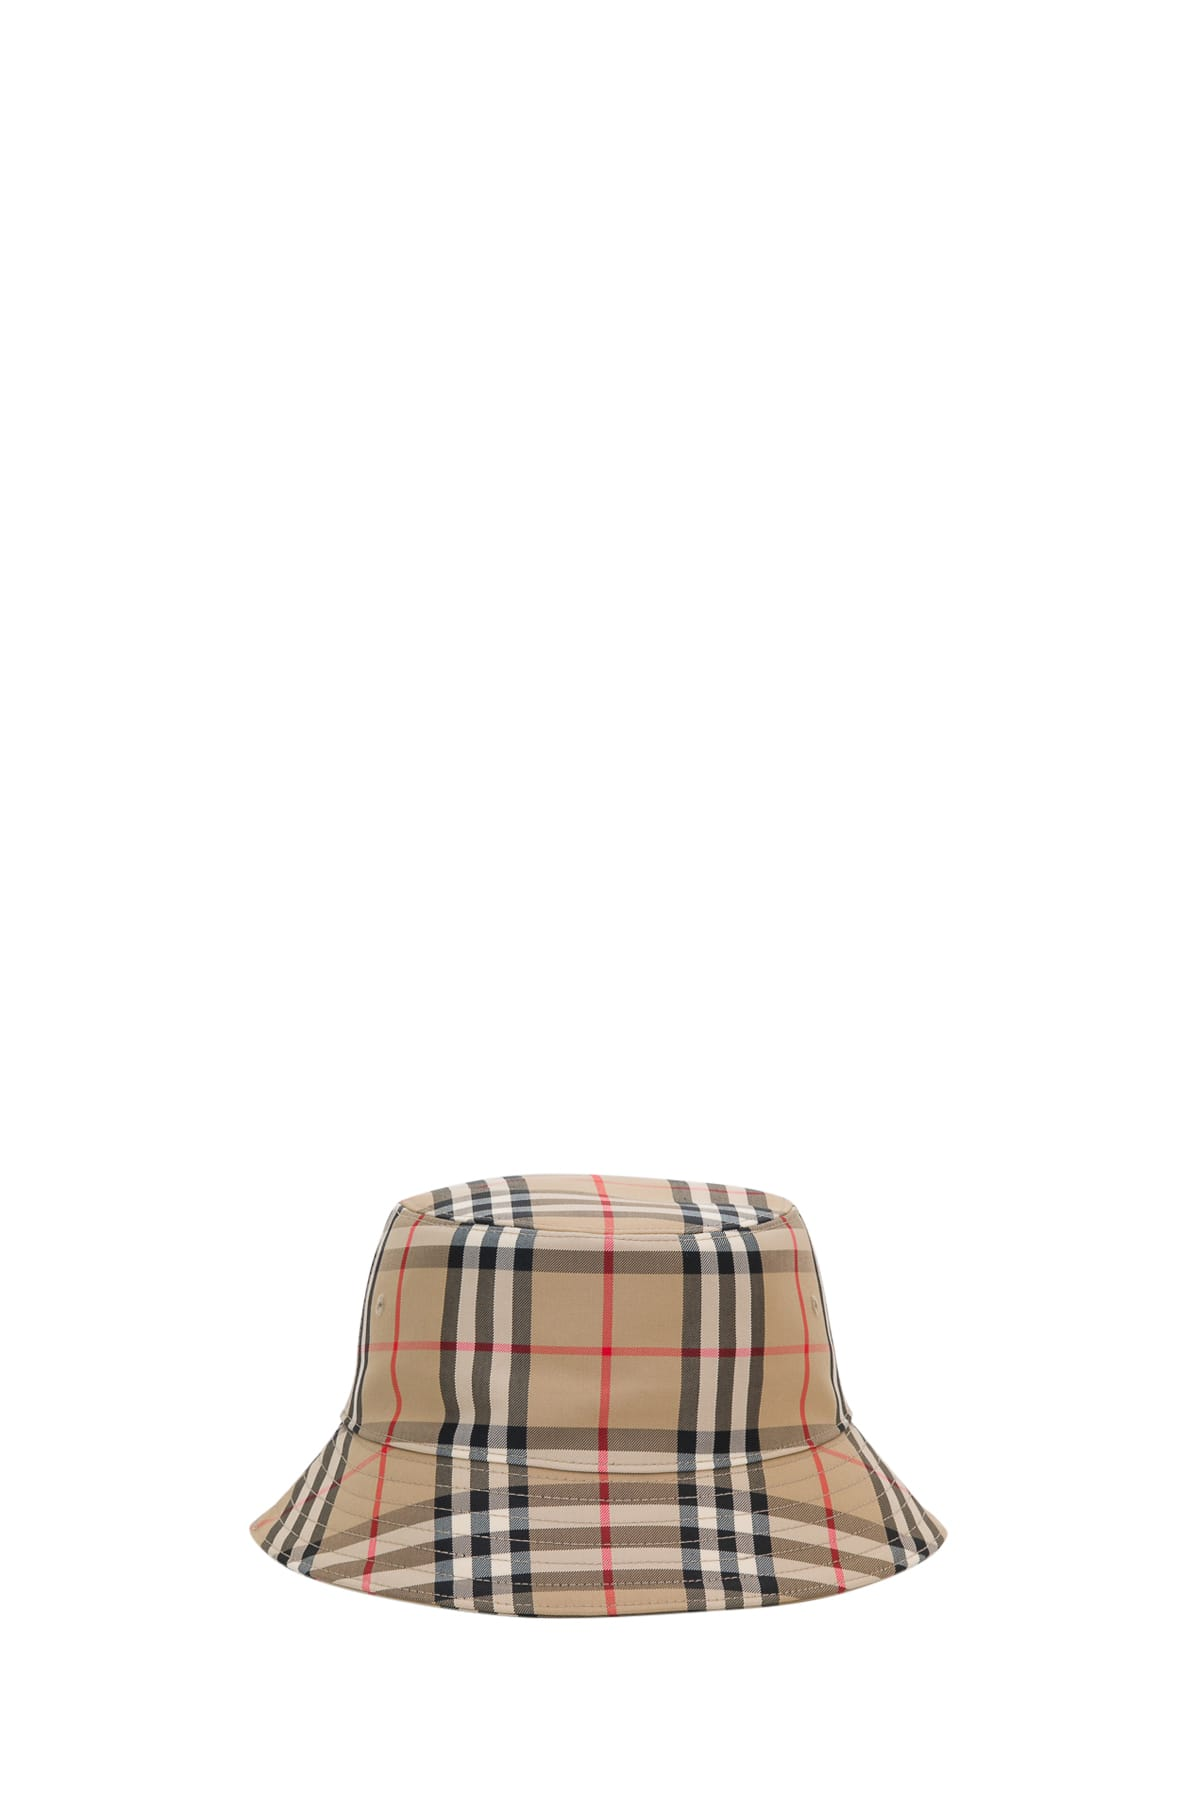 Burberry Hats BUCKET HAT ARCHIVE CHECK